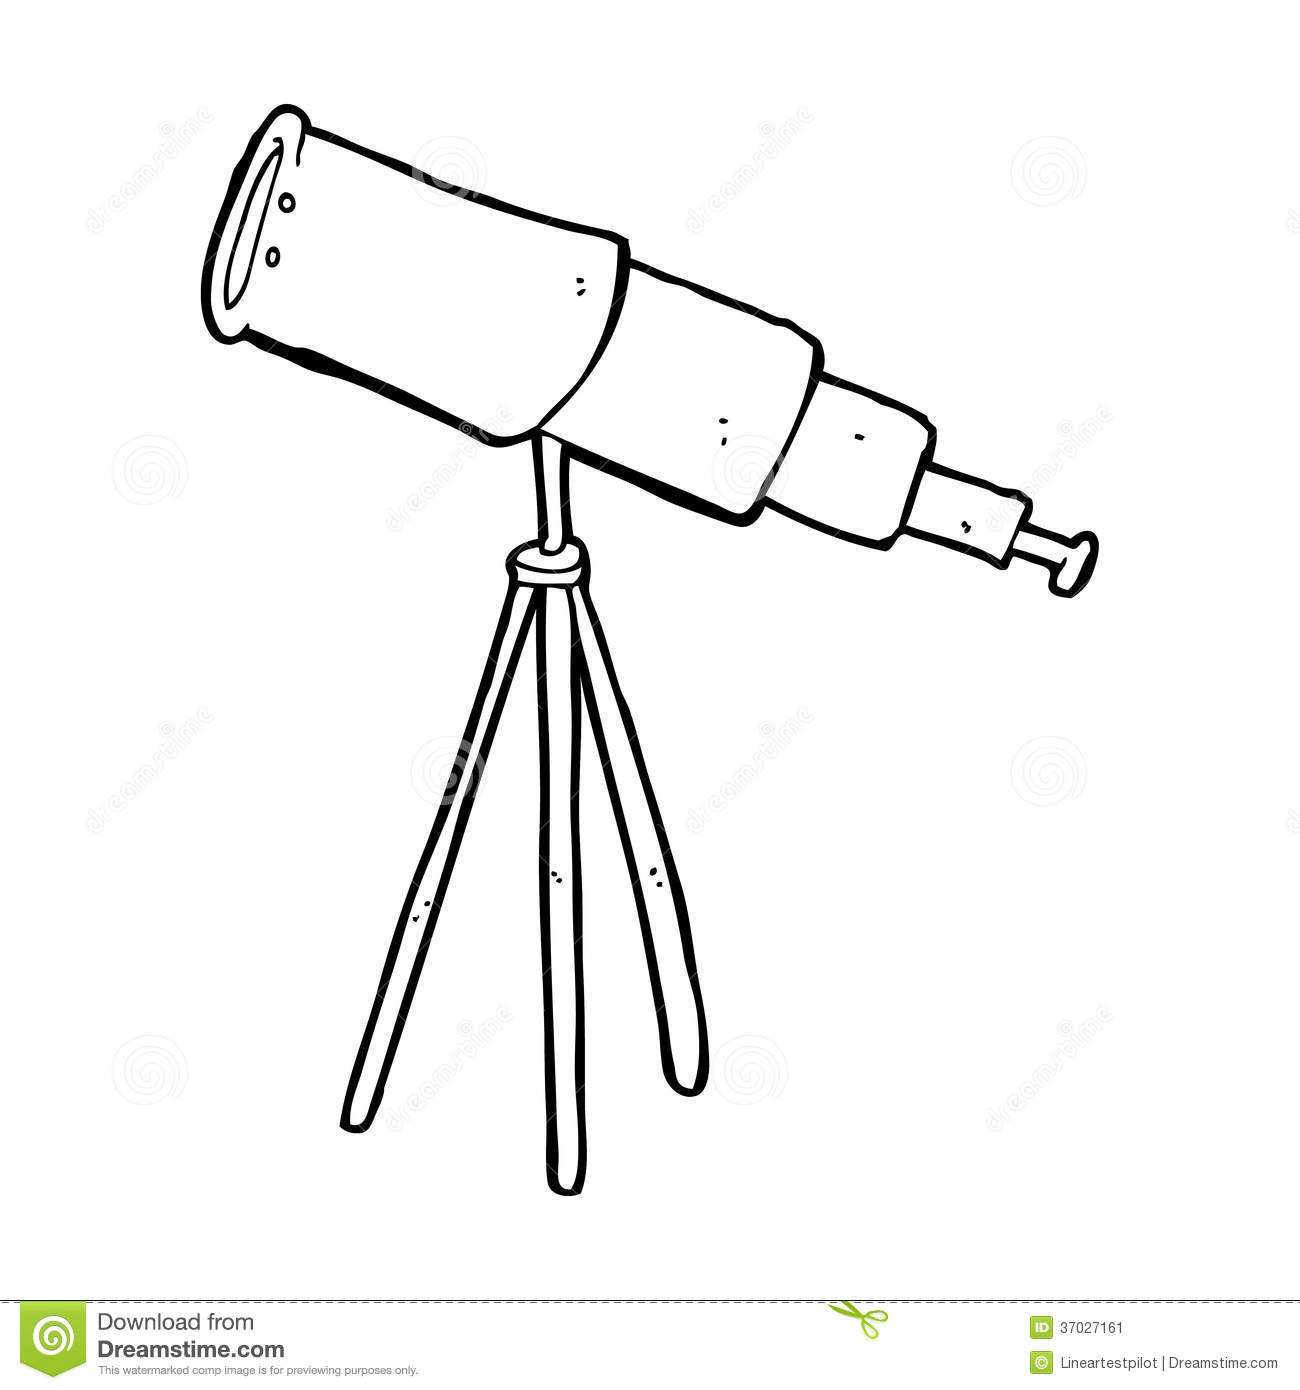 Telescope clipart black and white 4 » Clipart Portal.